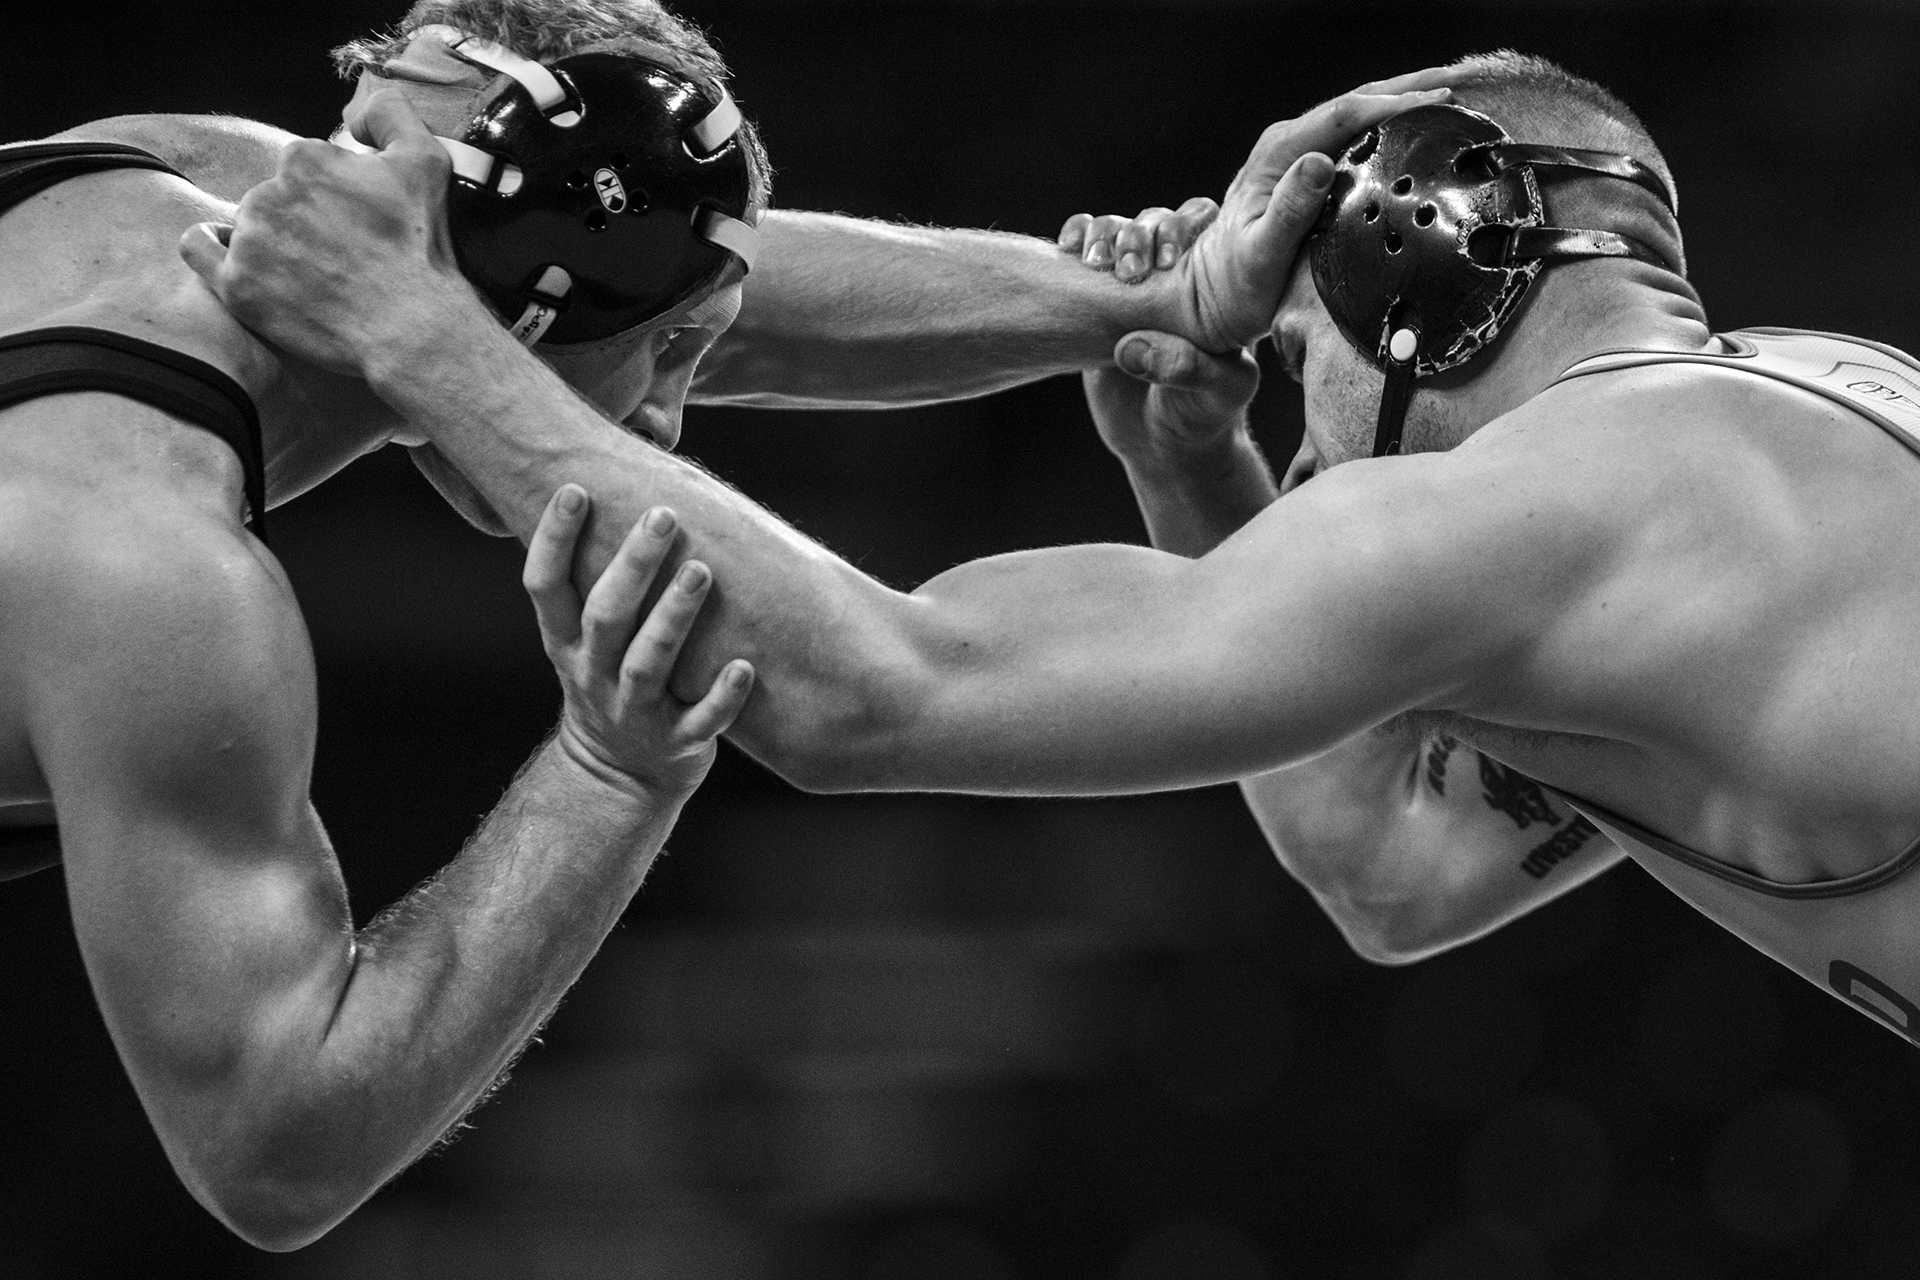 Iowa's Kaleb Young (165 lbs.) competes against Buffalo's Derek Holcomb during the Iowa City Duals wrestling match at Carver-Hawkeye Arena on Friday, Nov. 17, 2017. The Hawkeyes defeated Iowa Central 48-0, Buffalo 33-6, and North Dakota State 38-6. (Ben Smith/The Daily Iowan)